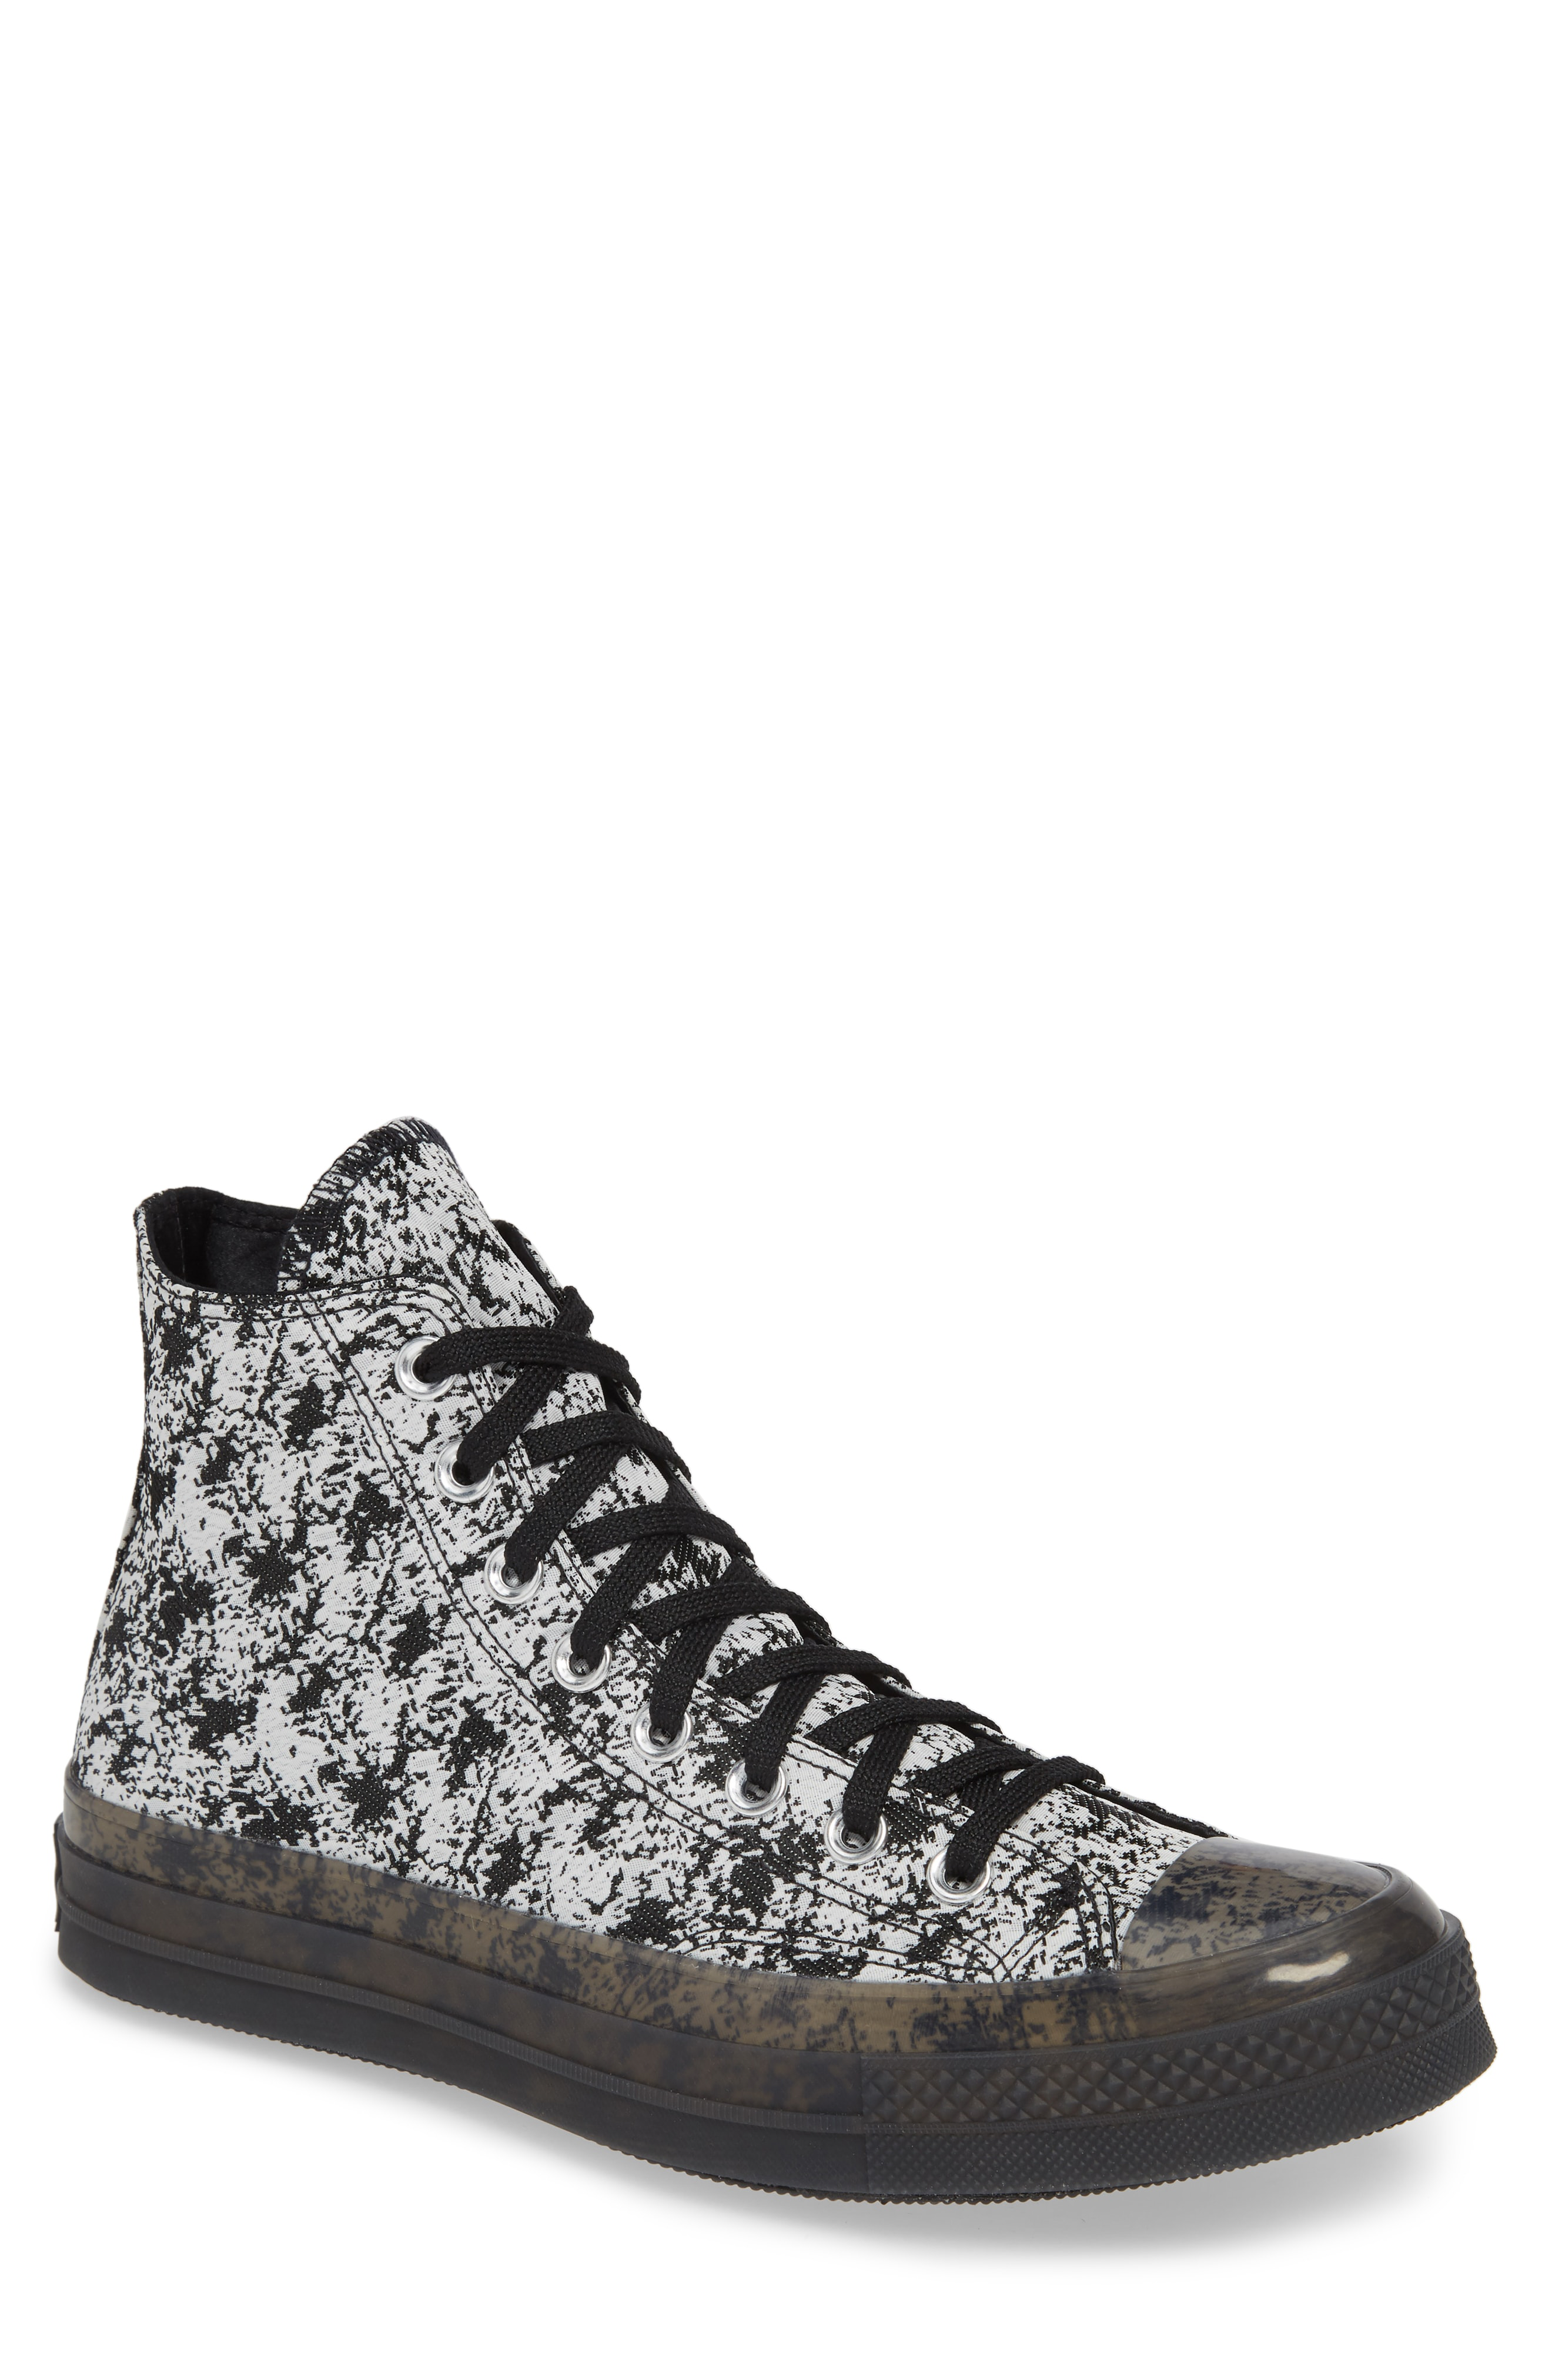 1e756e5d6caf Converse Men s Chuck Taylor All Star 70 High Top Casual Sneakers From Finish  Line In Black